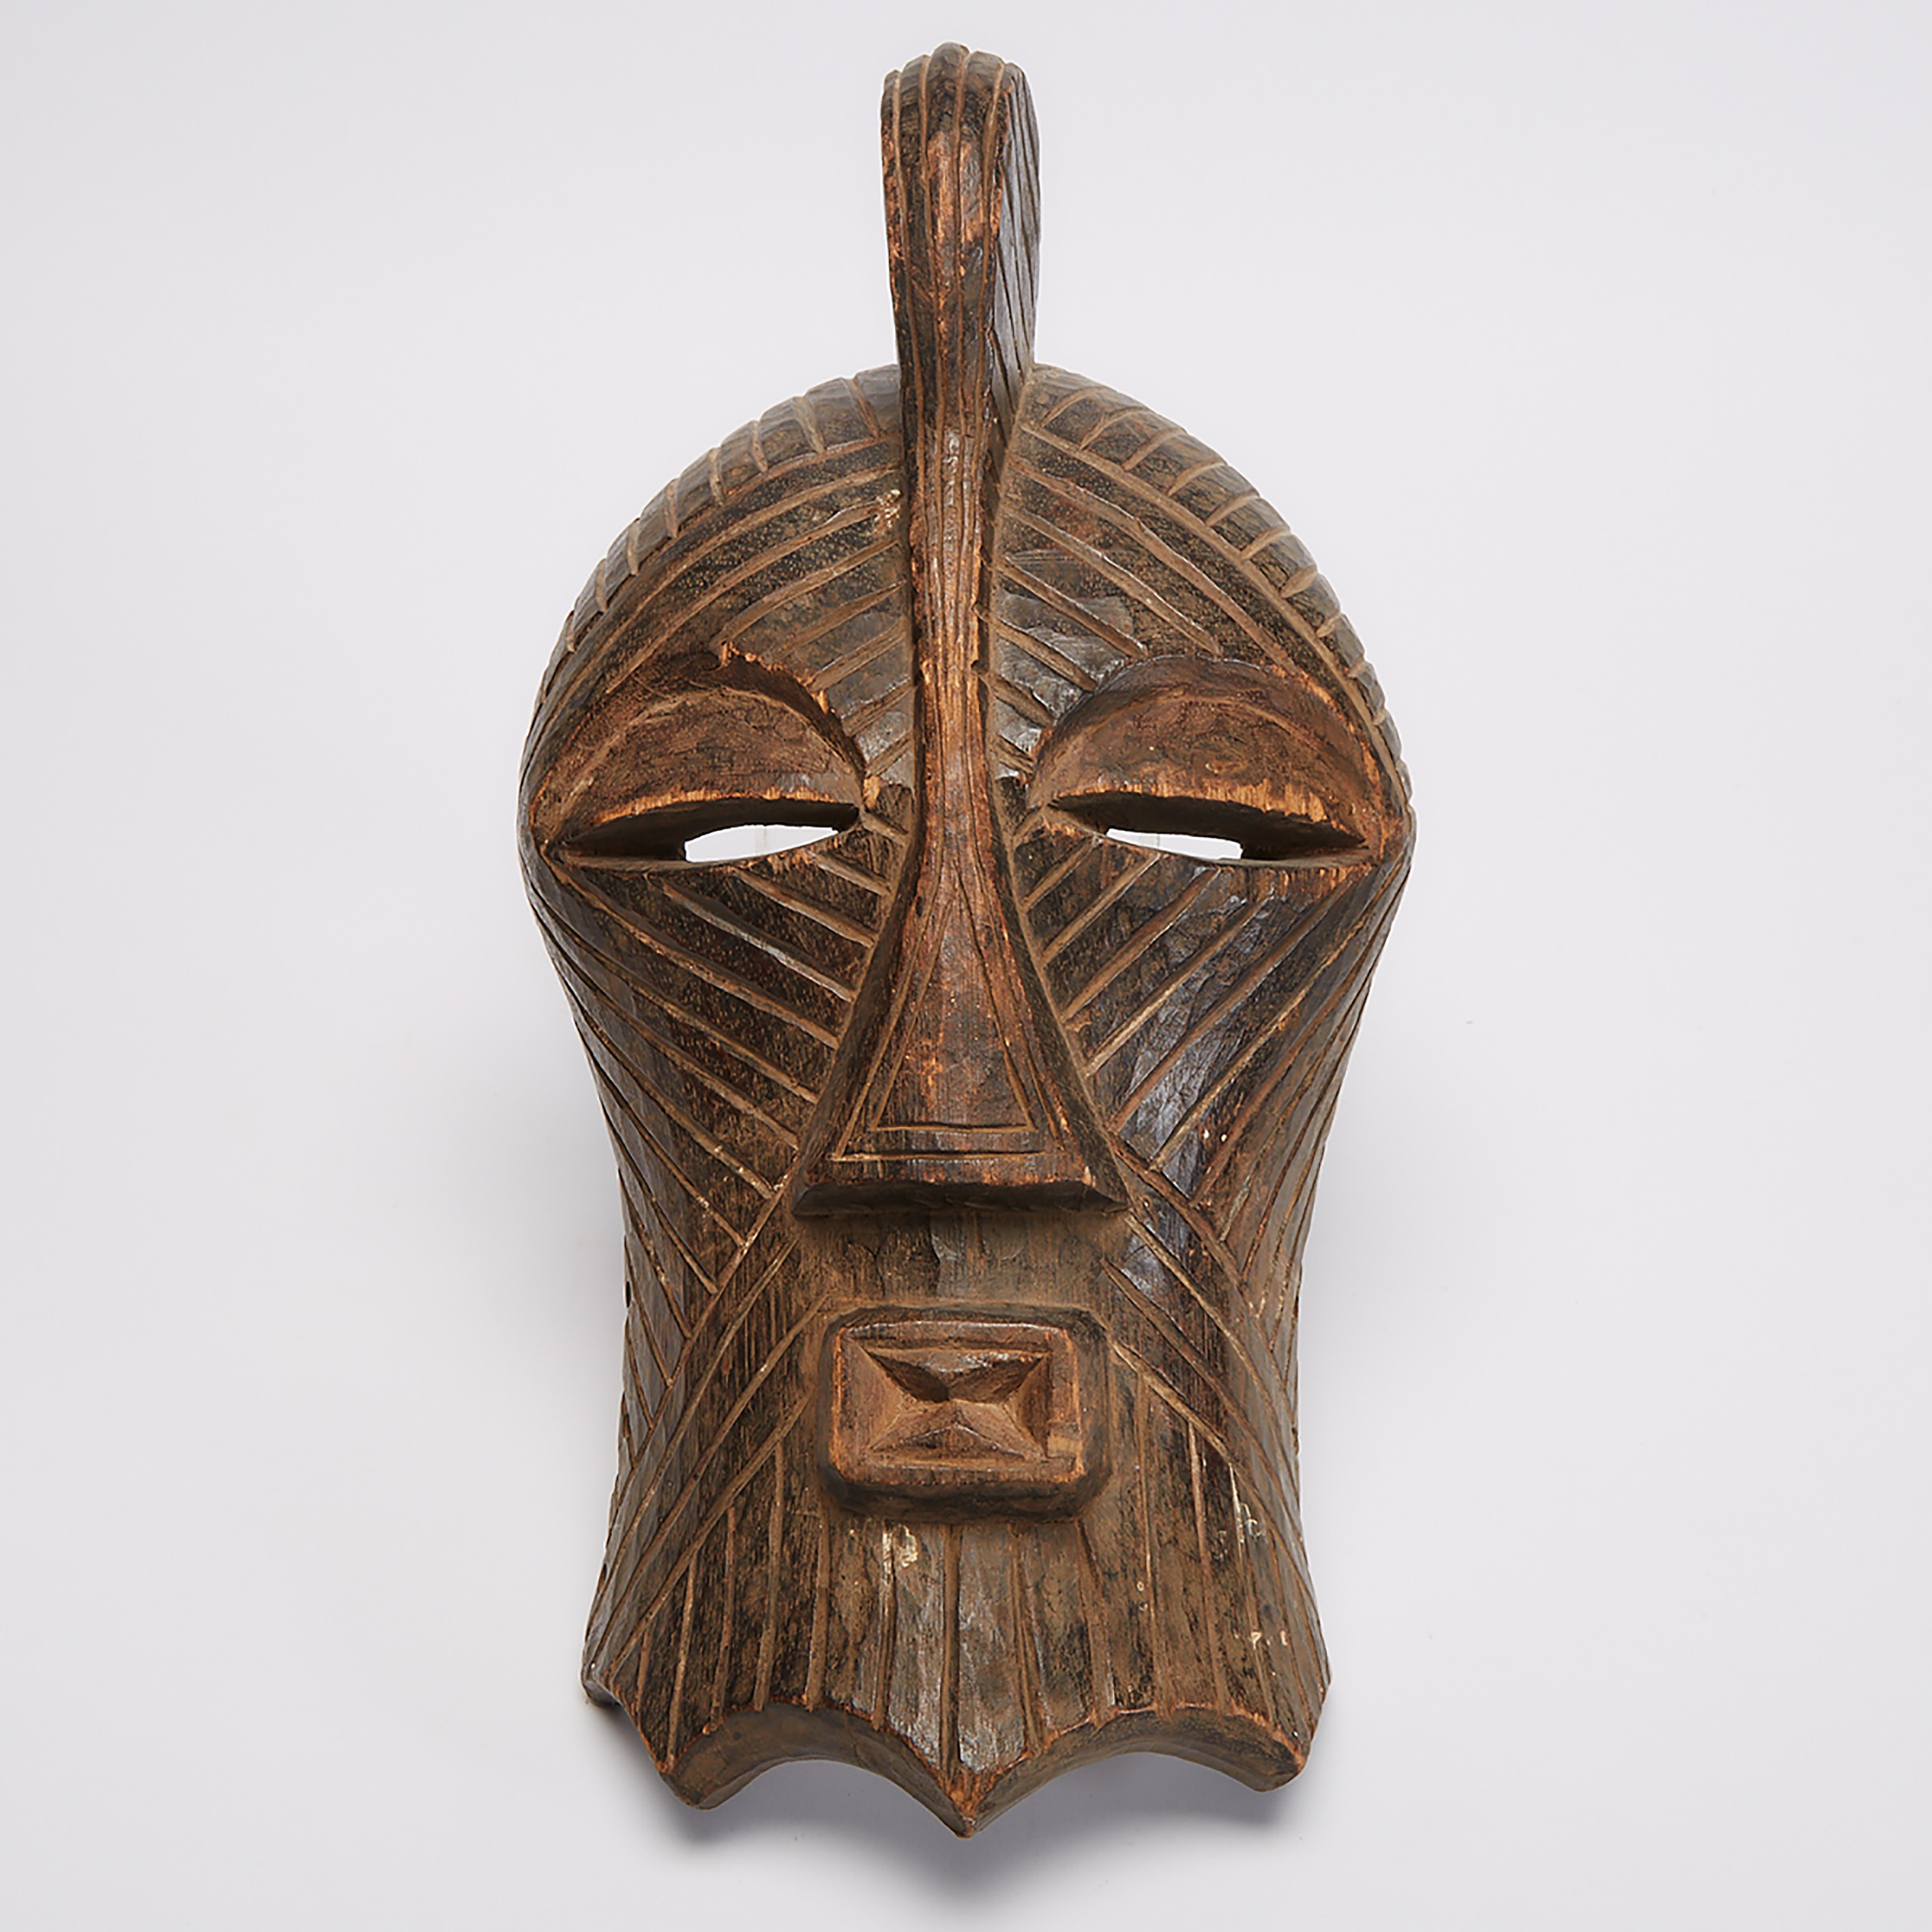 Songye Kifwebe Mask, Democratic Republic of Congo, Central Africa